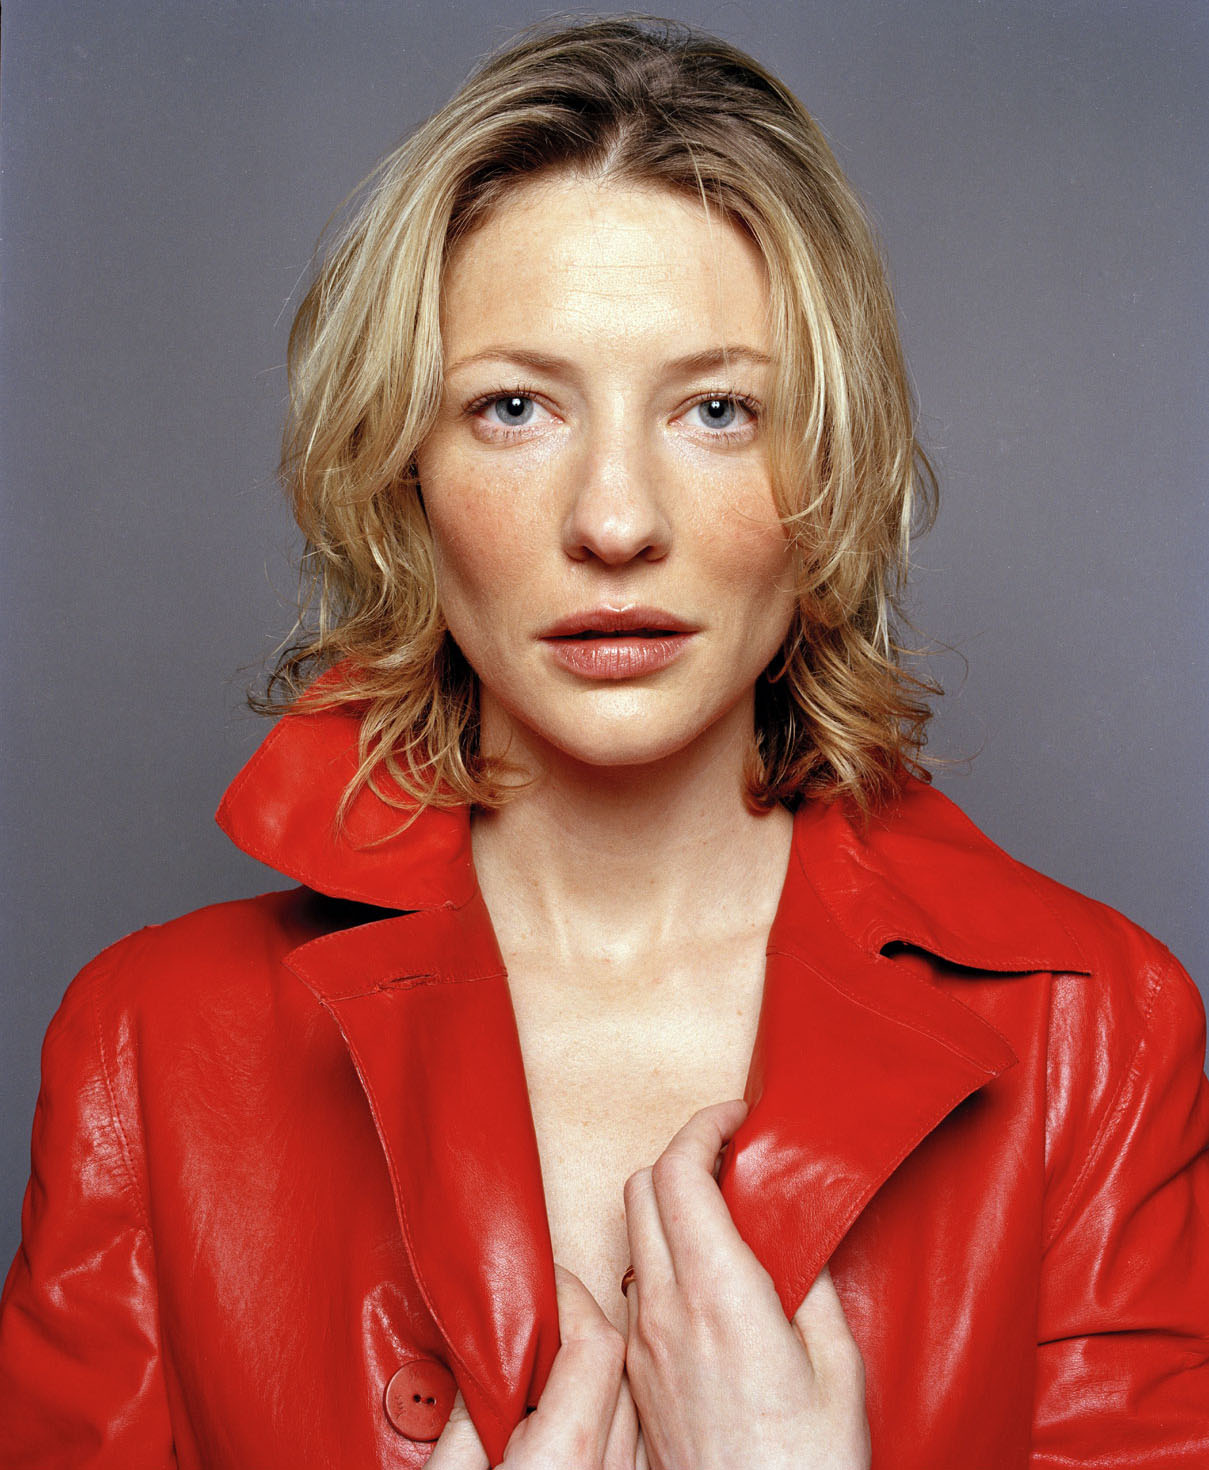 Cate Blanchett 702543 Wallpapers High Quality Download Free